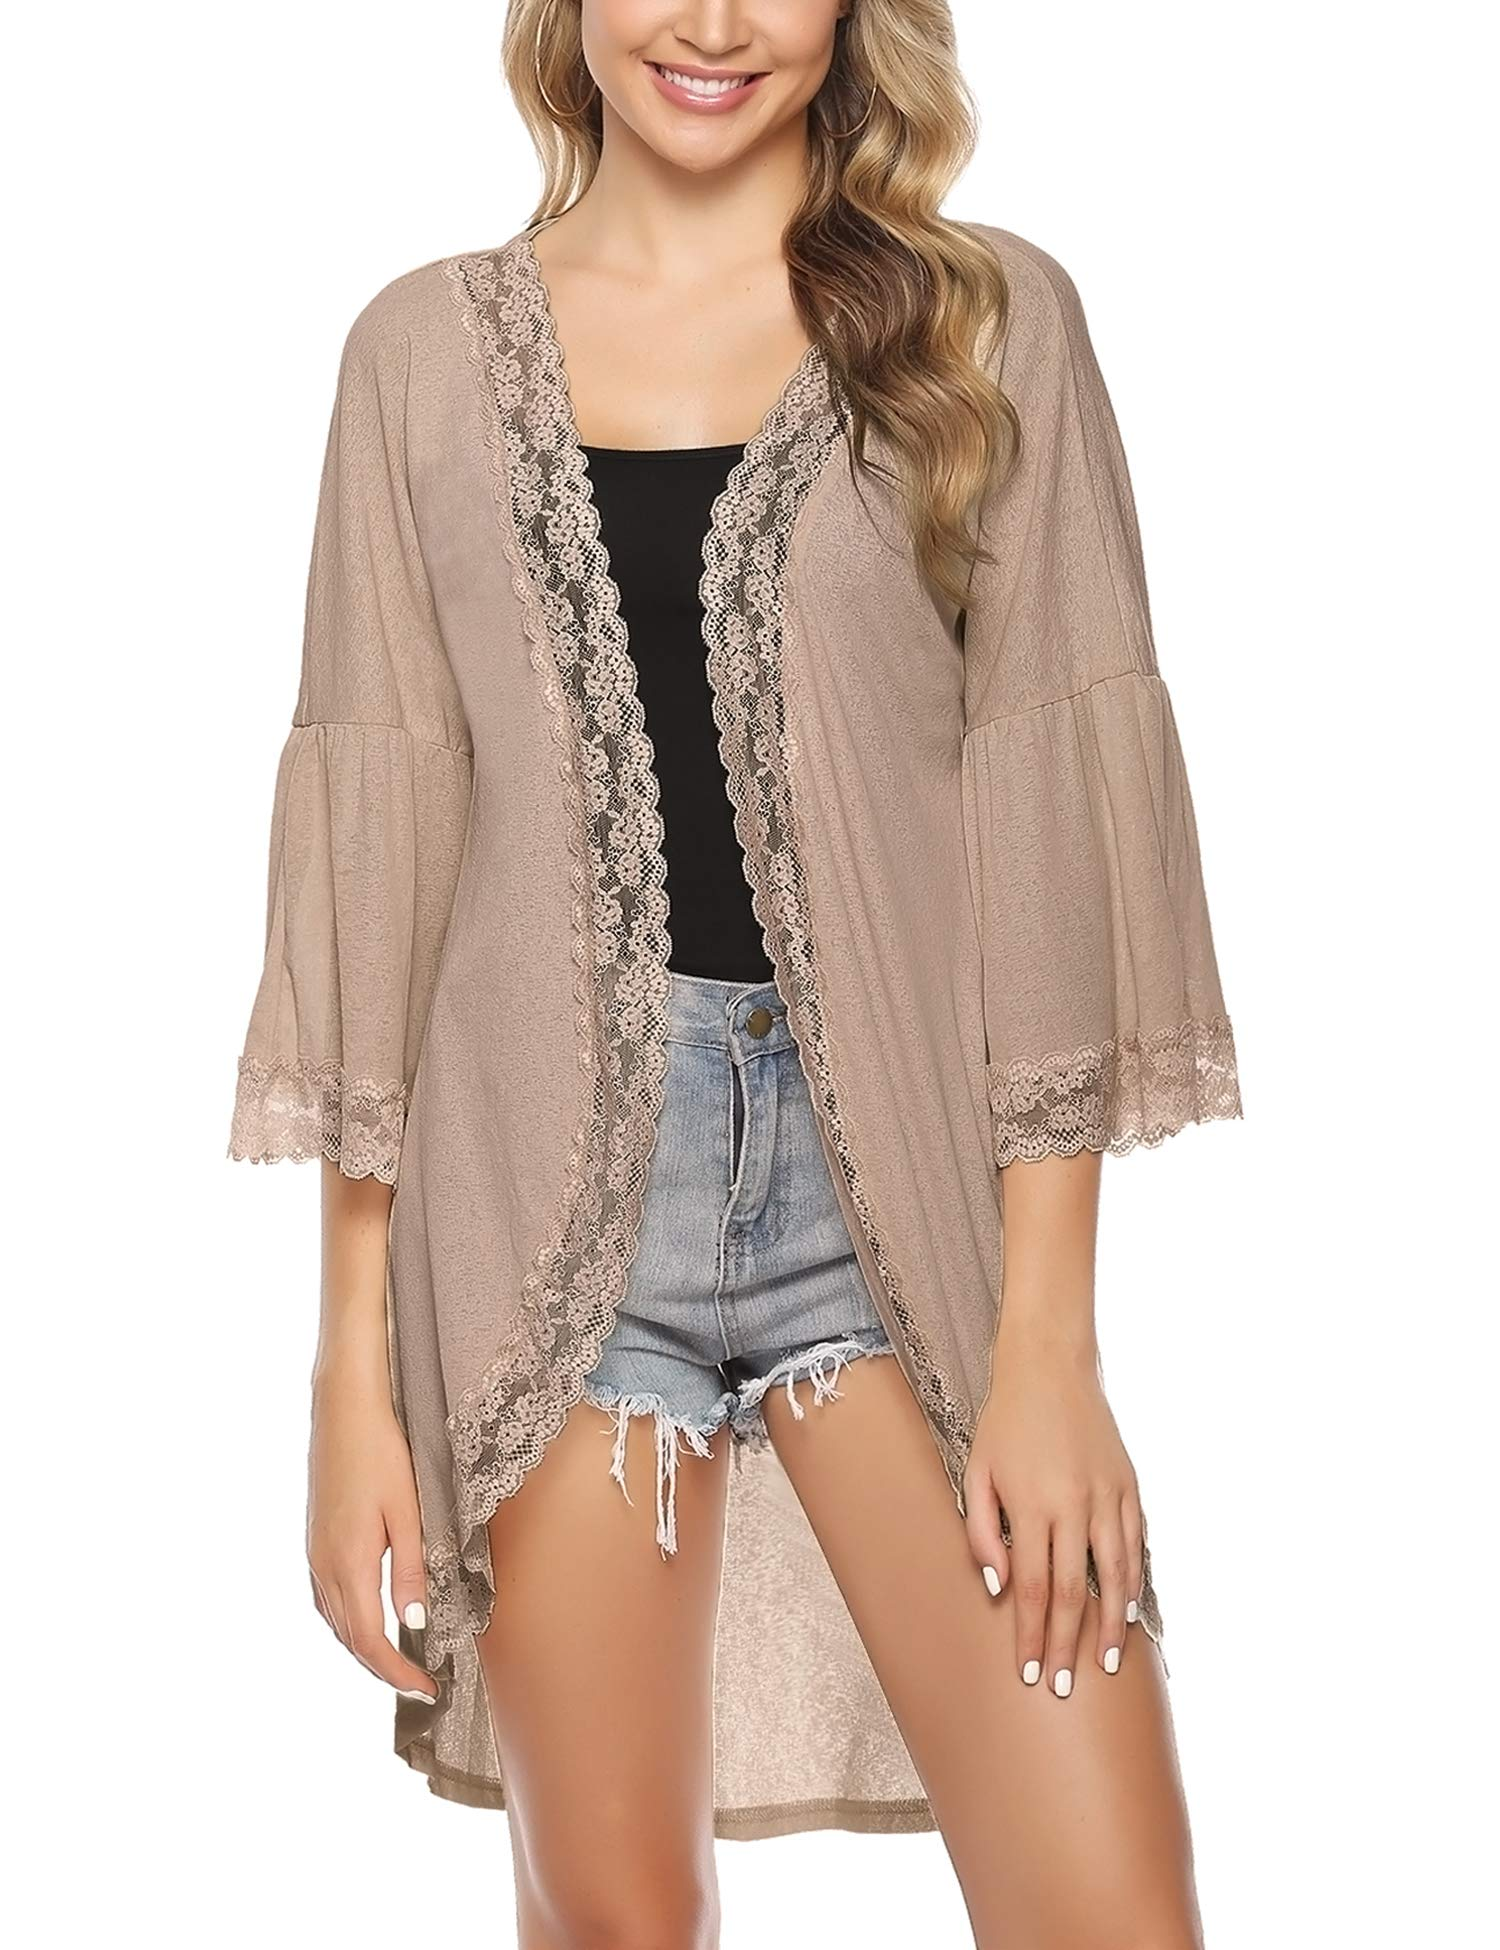 iClosam Women's Cardigan Cover Up 3/4 Bell Sleeve Lace Kimono Cardigan Blouse Top